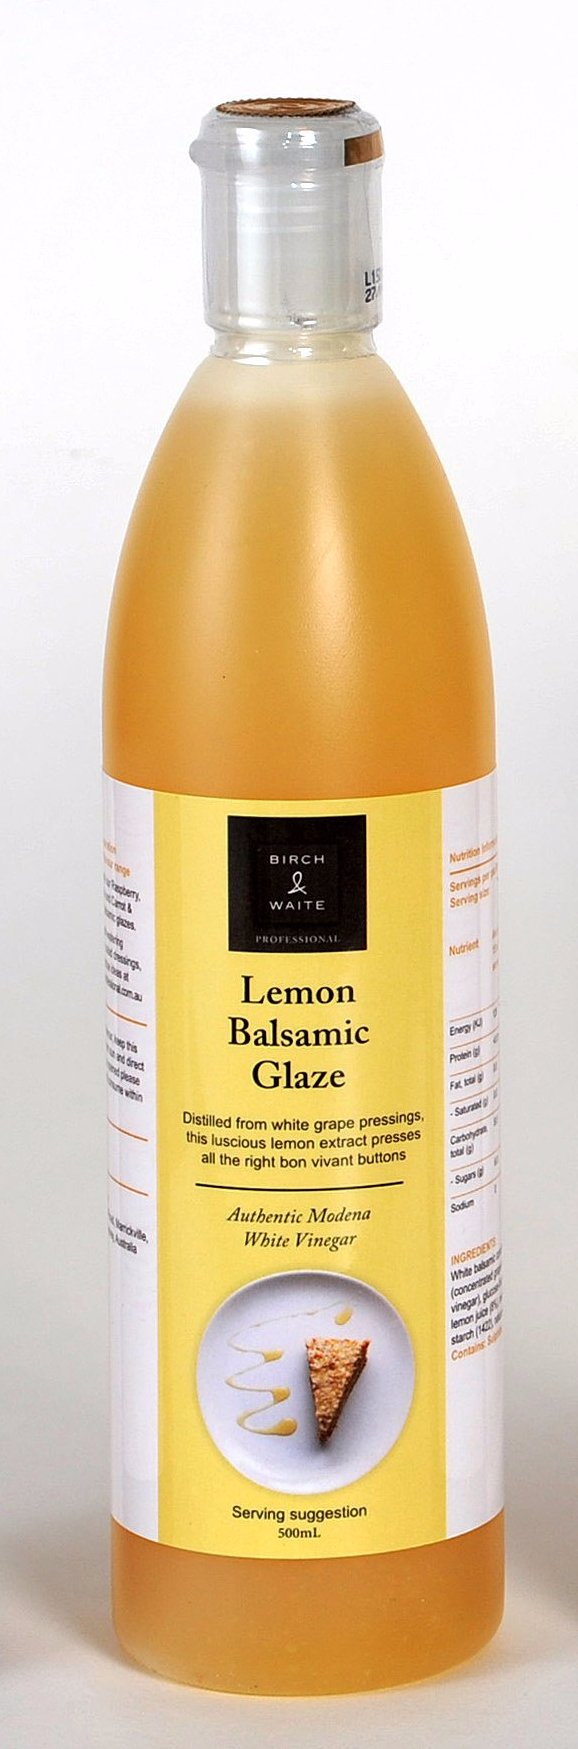 Lemon Balsamic Glaze 500ml Bottle Birch and Waite